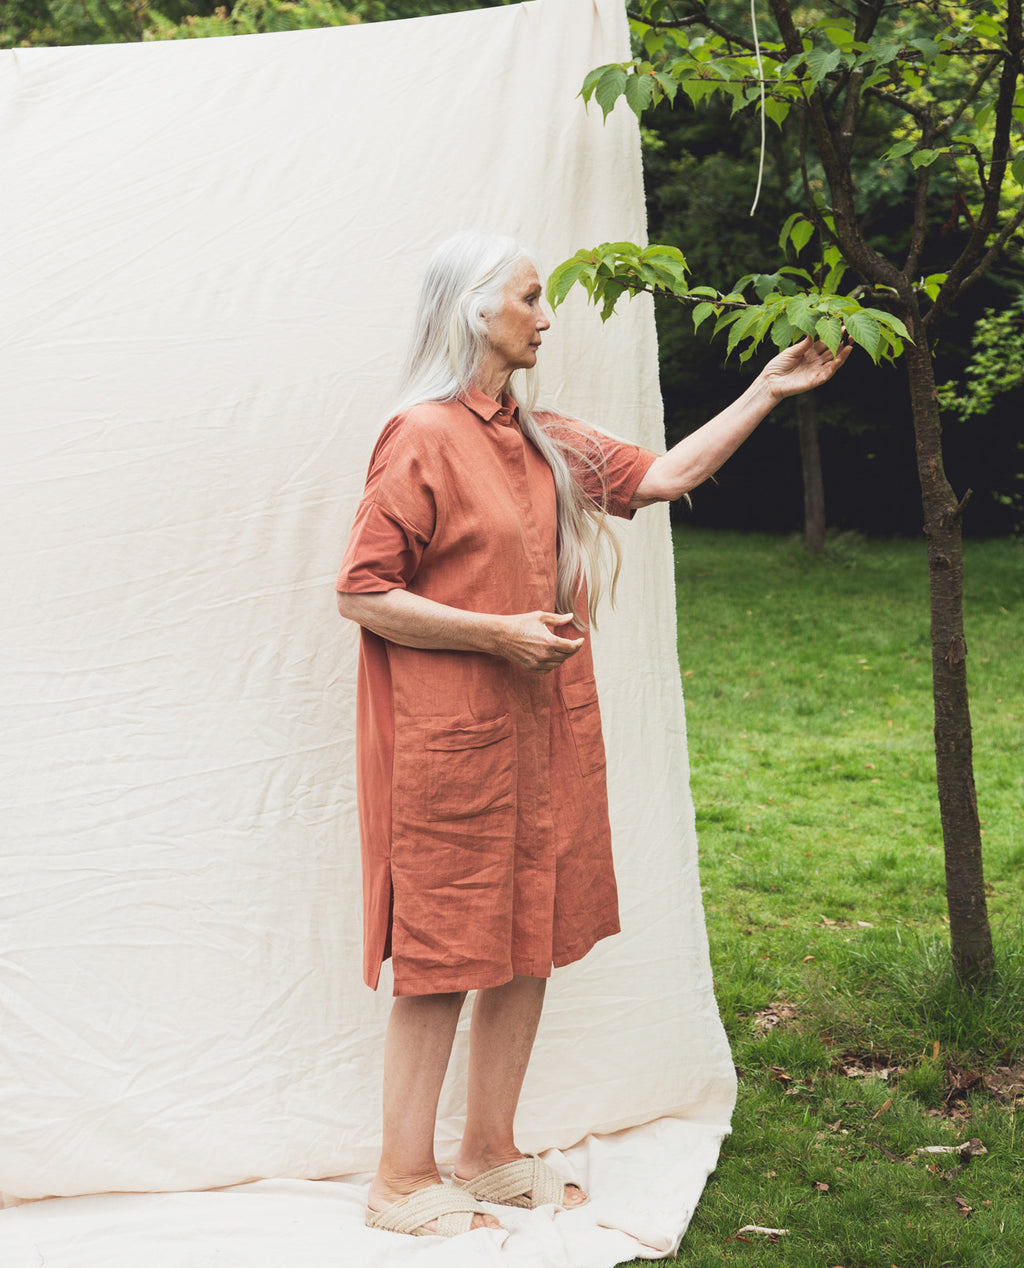 Natasha-May Organic Cotton & Linen Dress In Clay